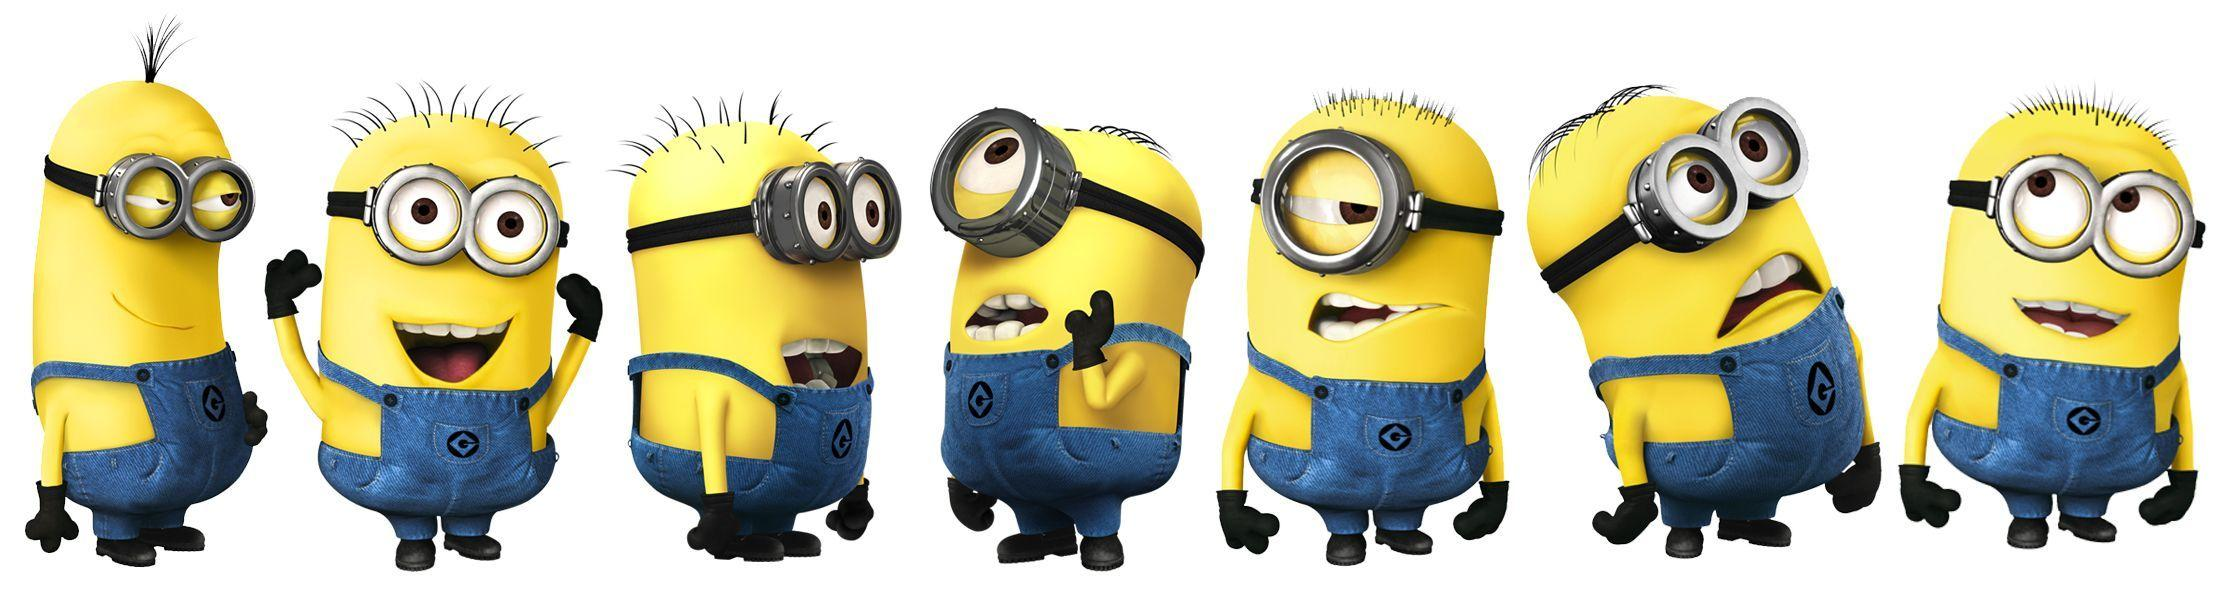 Image For > Minion Wallpapers